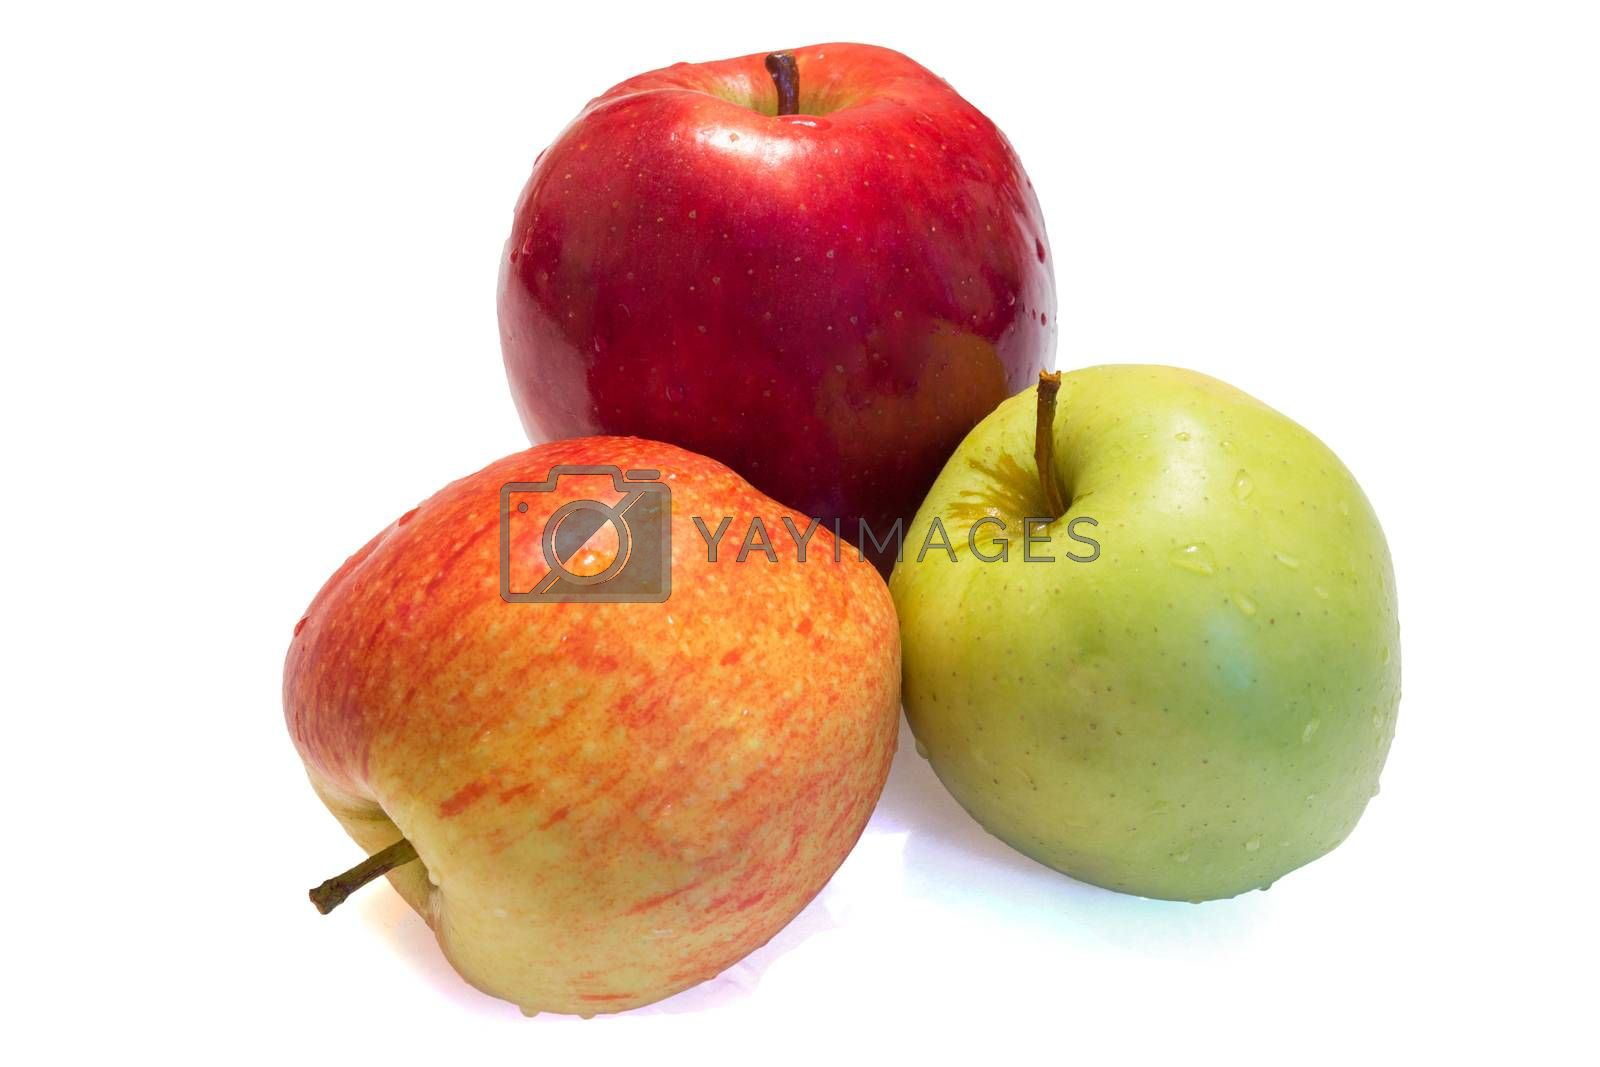 The photo shows an apple on a white background.